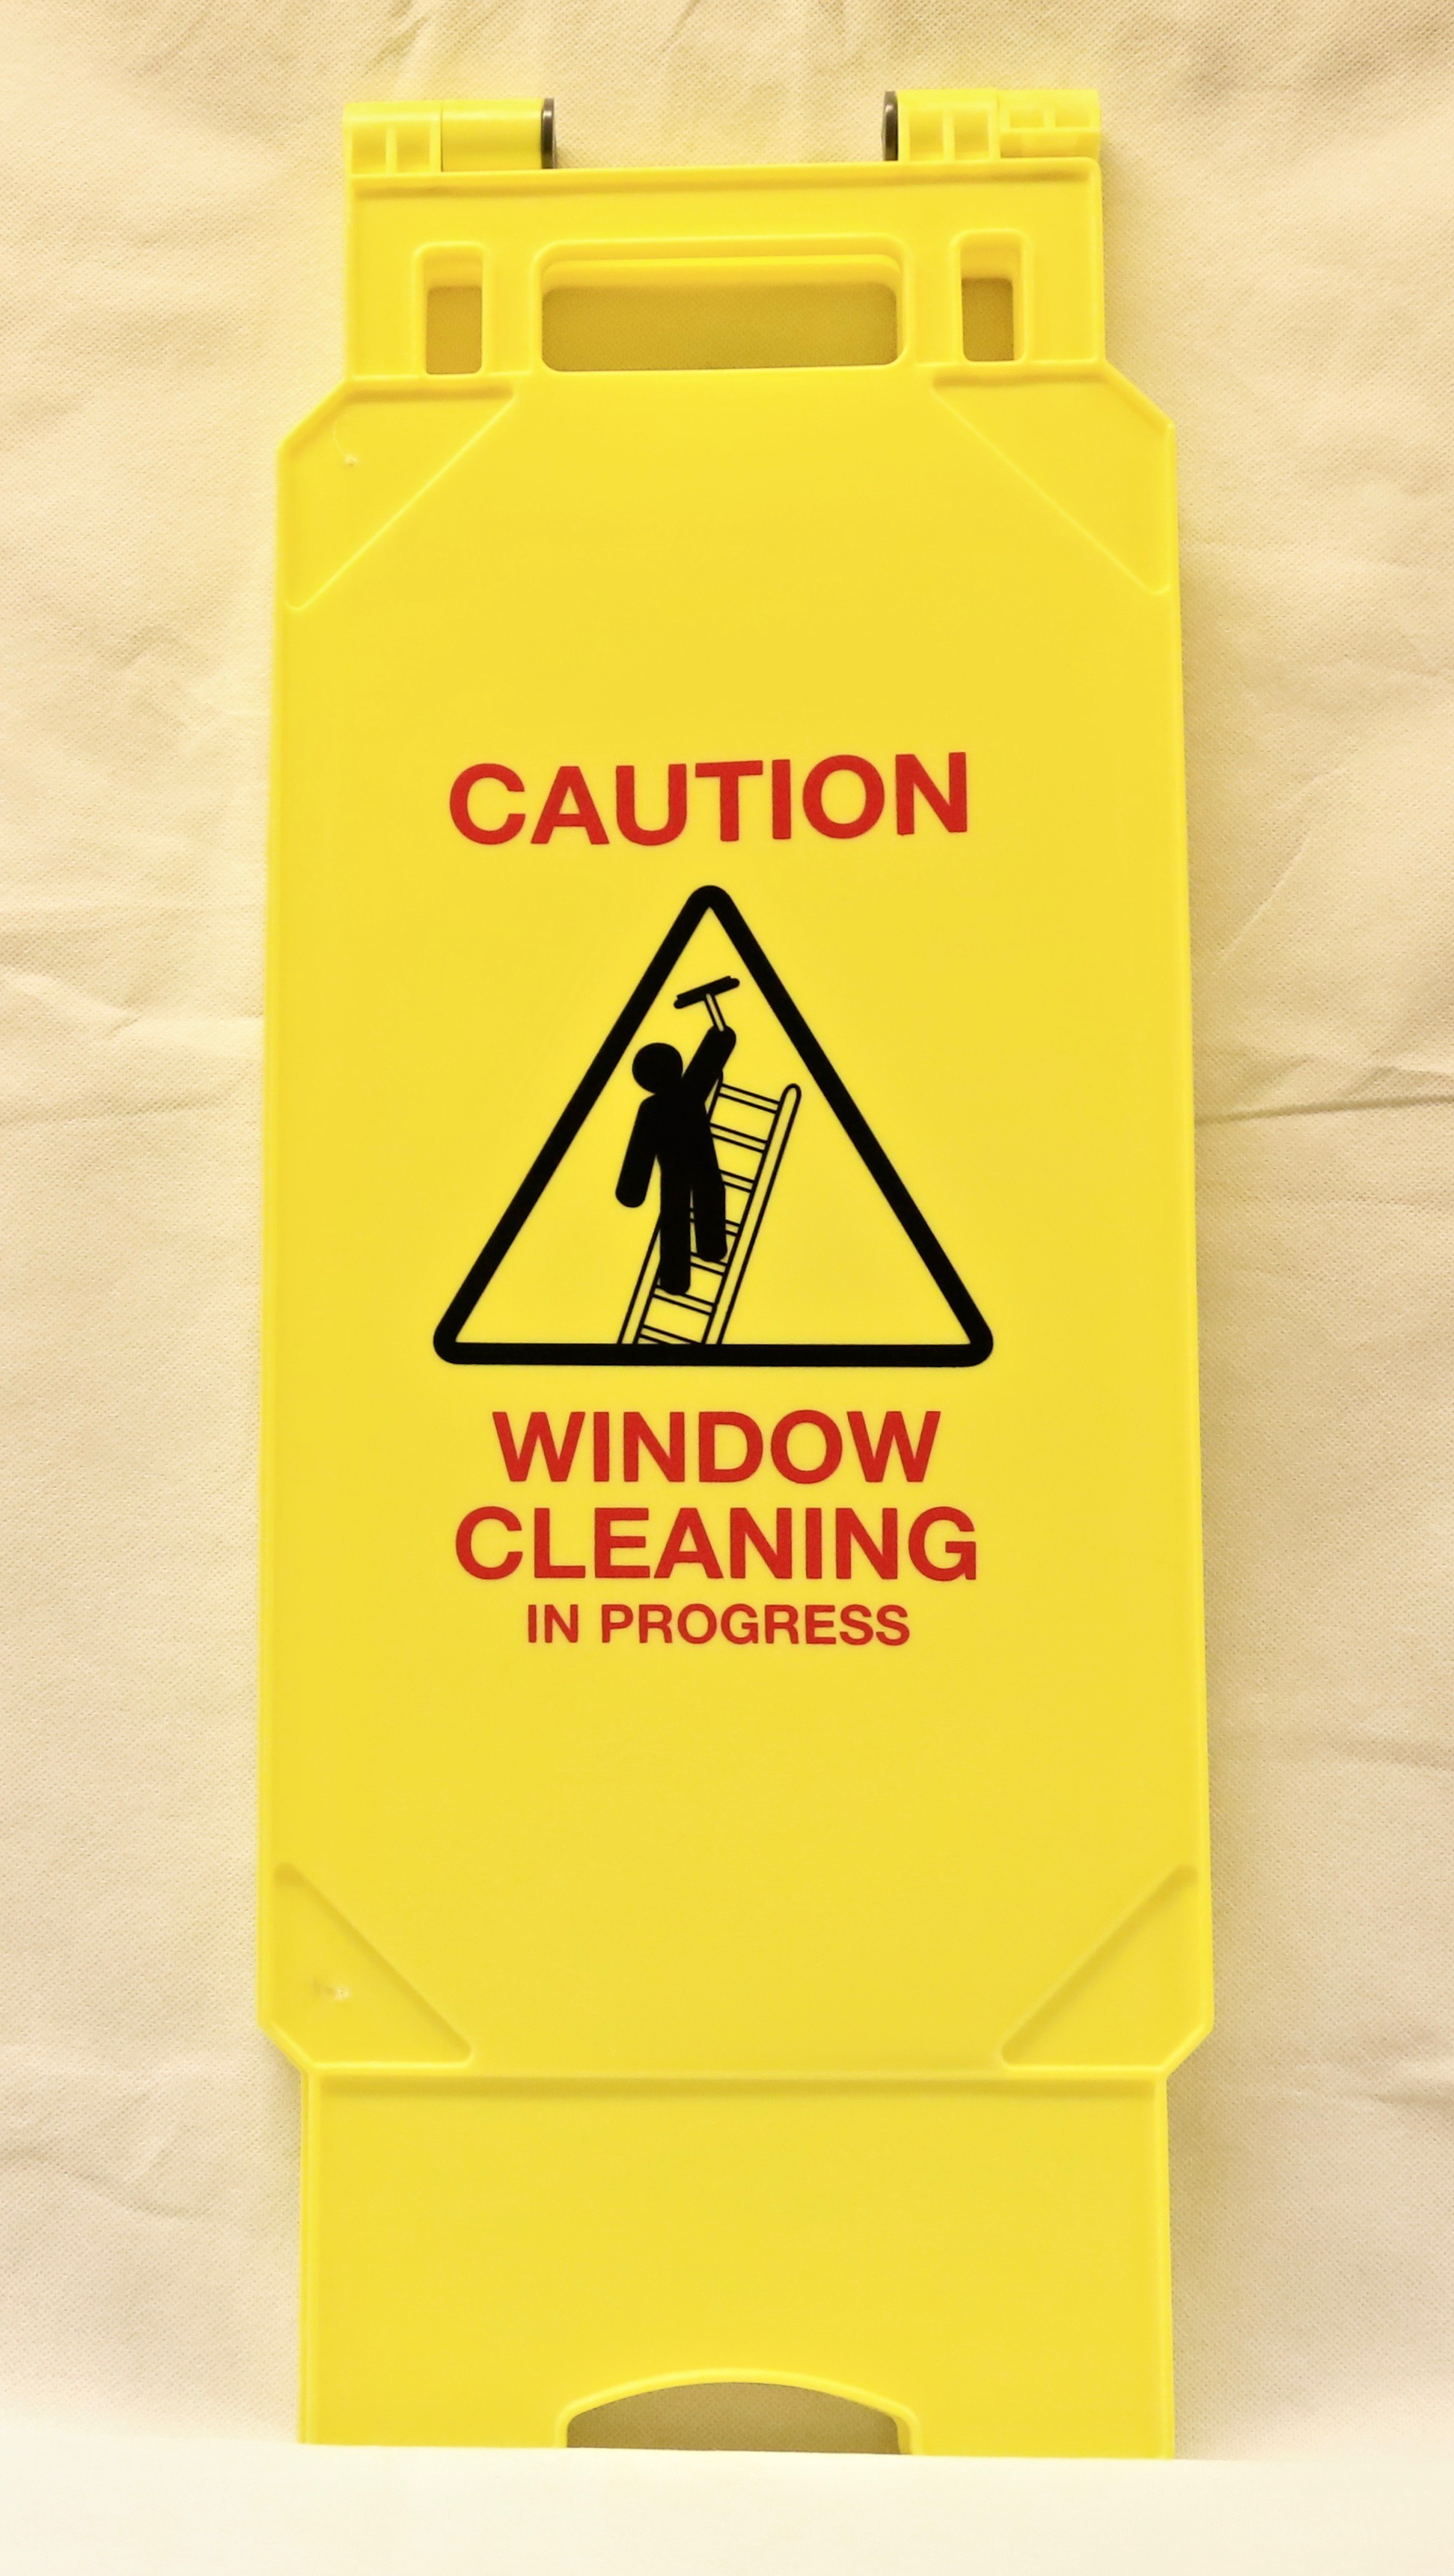 InchCaution Window CleaningInch Safety Sign.(1)